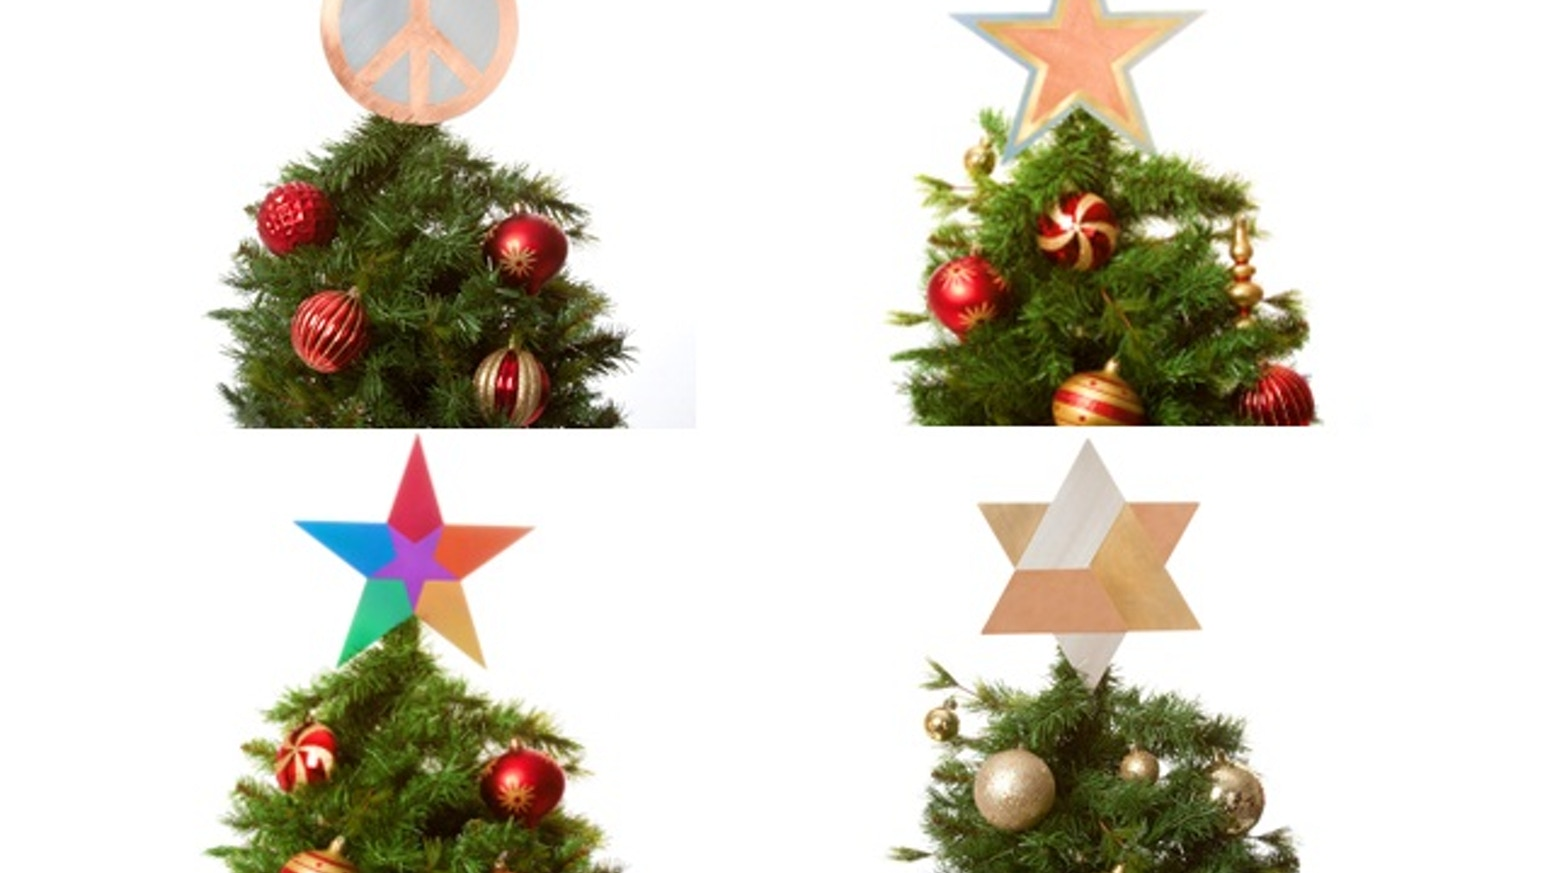 Diversity Christmas Tree Toppers: Celebrate In Style! by ...